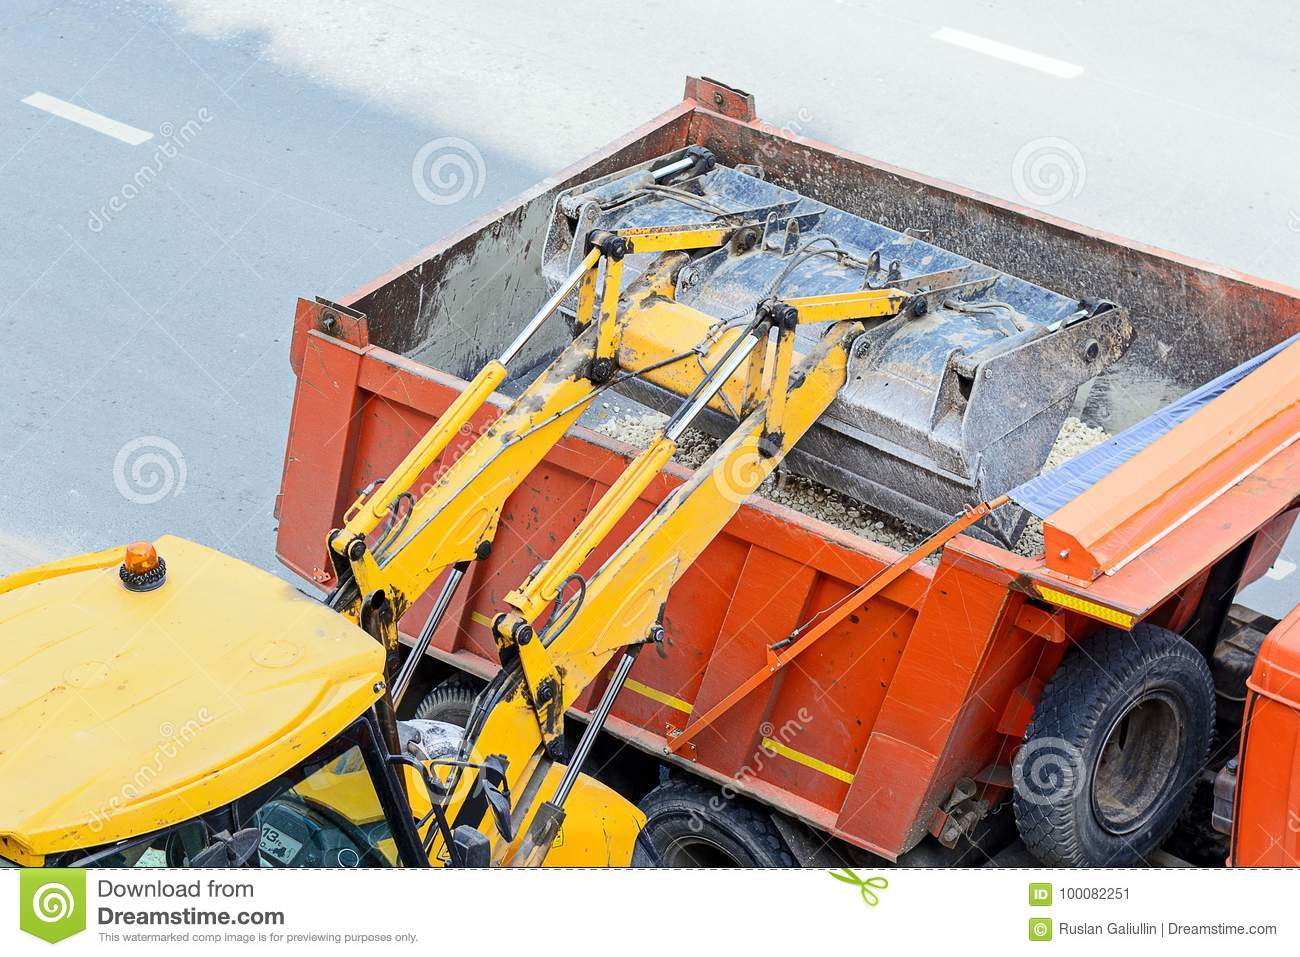 Tractor loading gravel into a truck. road works